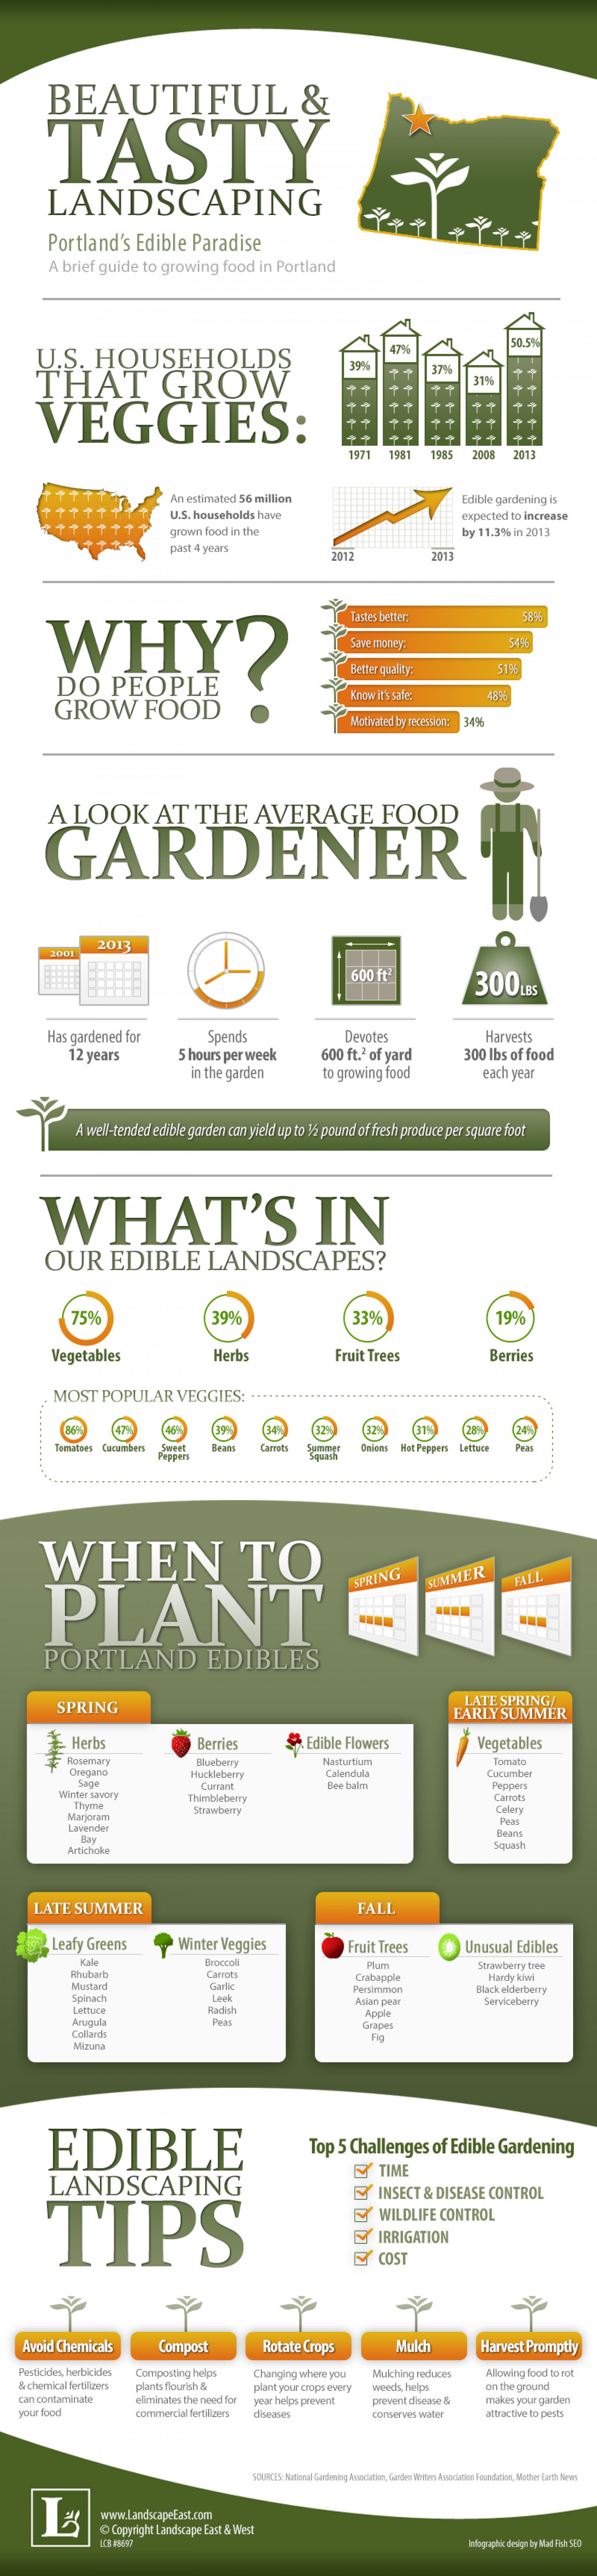 Beautiful and Tasty Landscaping: Portland's Edible Paradise  Infographic